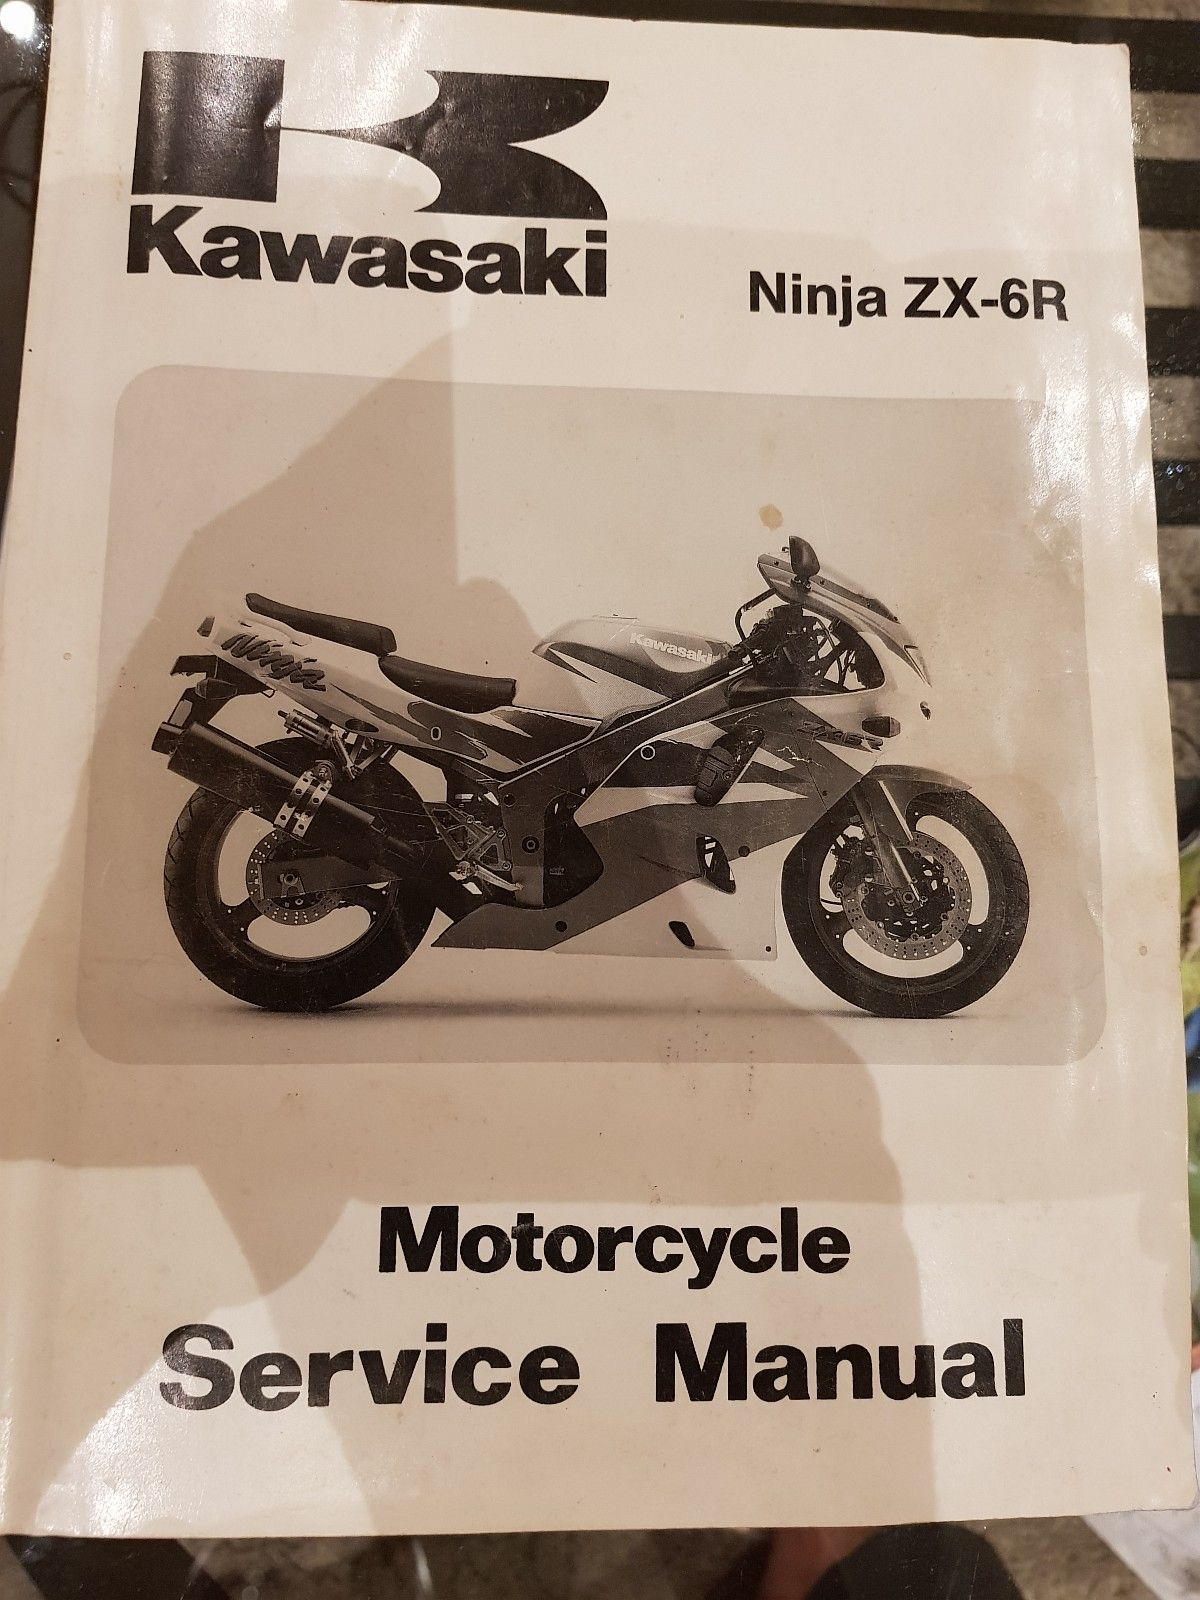 ninja zx 6r motorcycle service manual Array - 09 zx6r service manual rh 09  zx6r service manual bitlab solutions